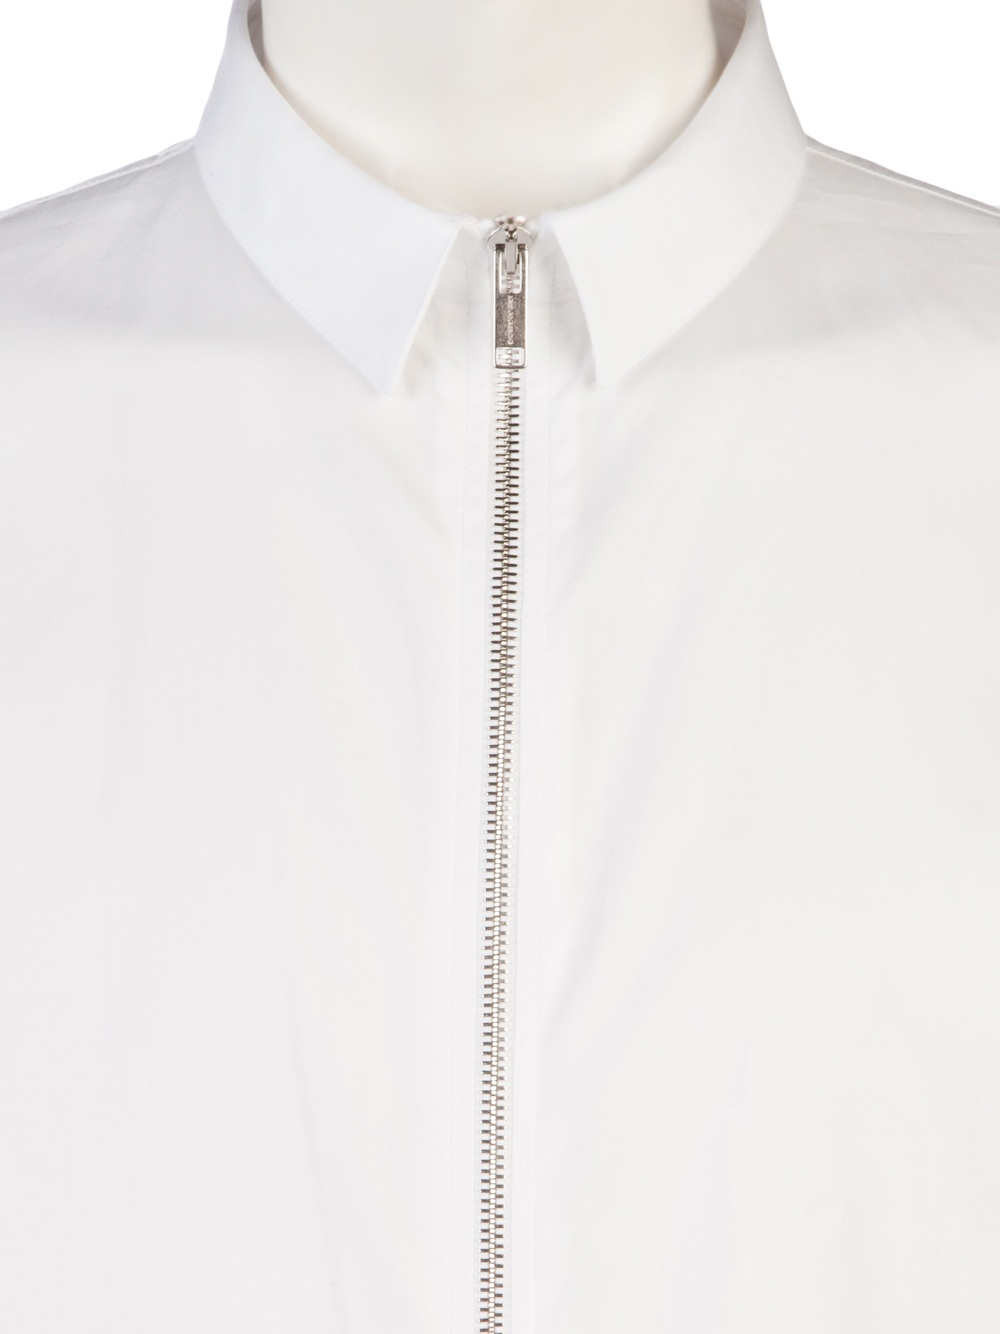 kris van assche zip up dress shirt in white for men lyst